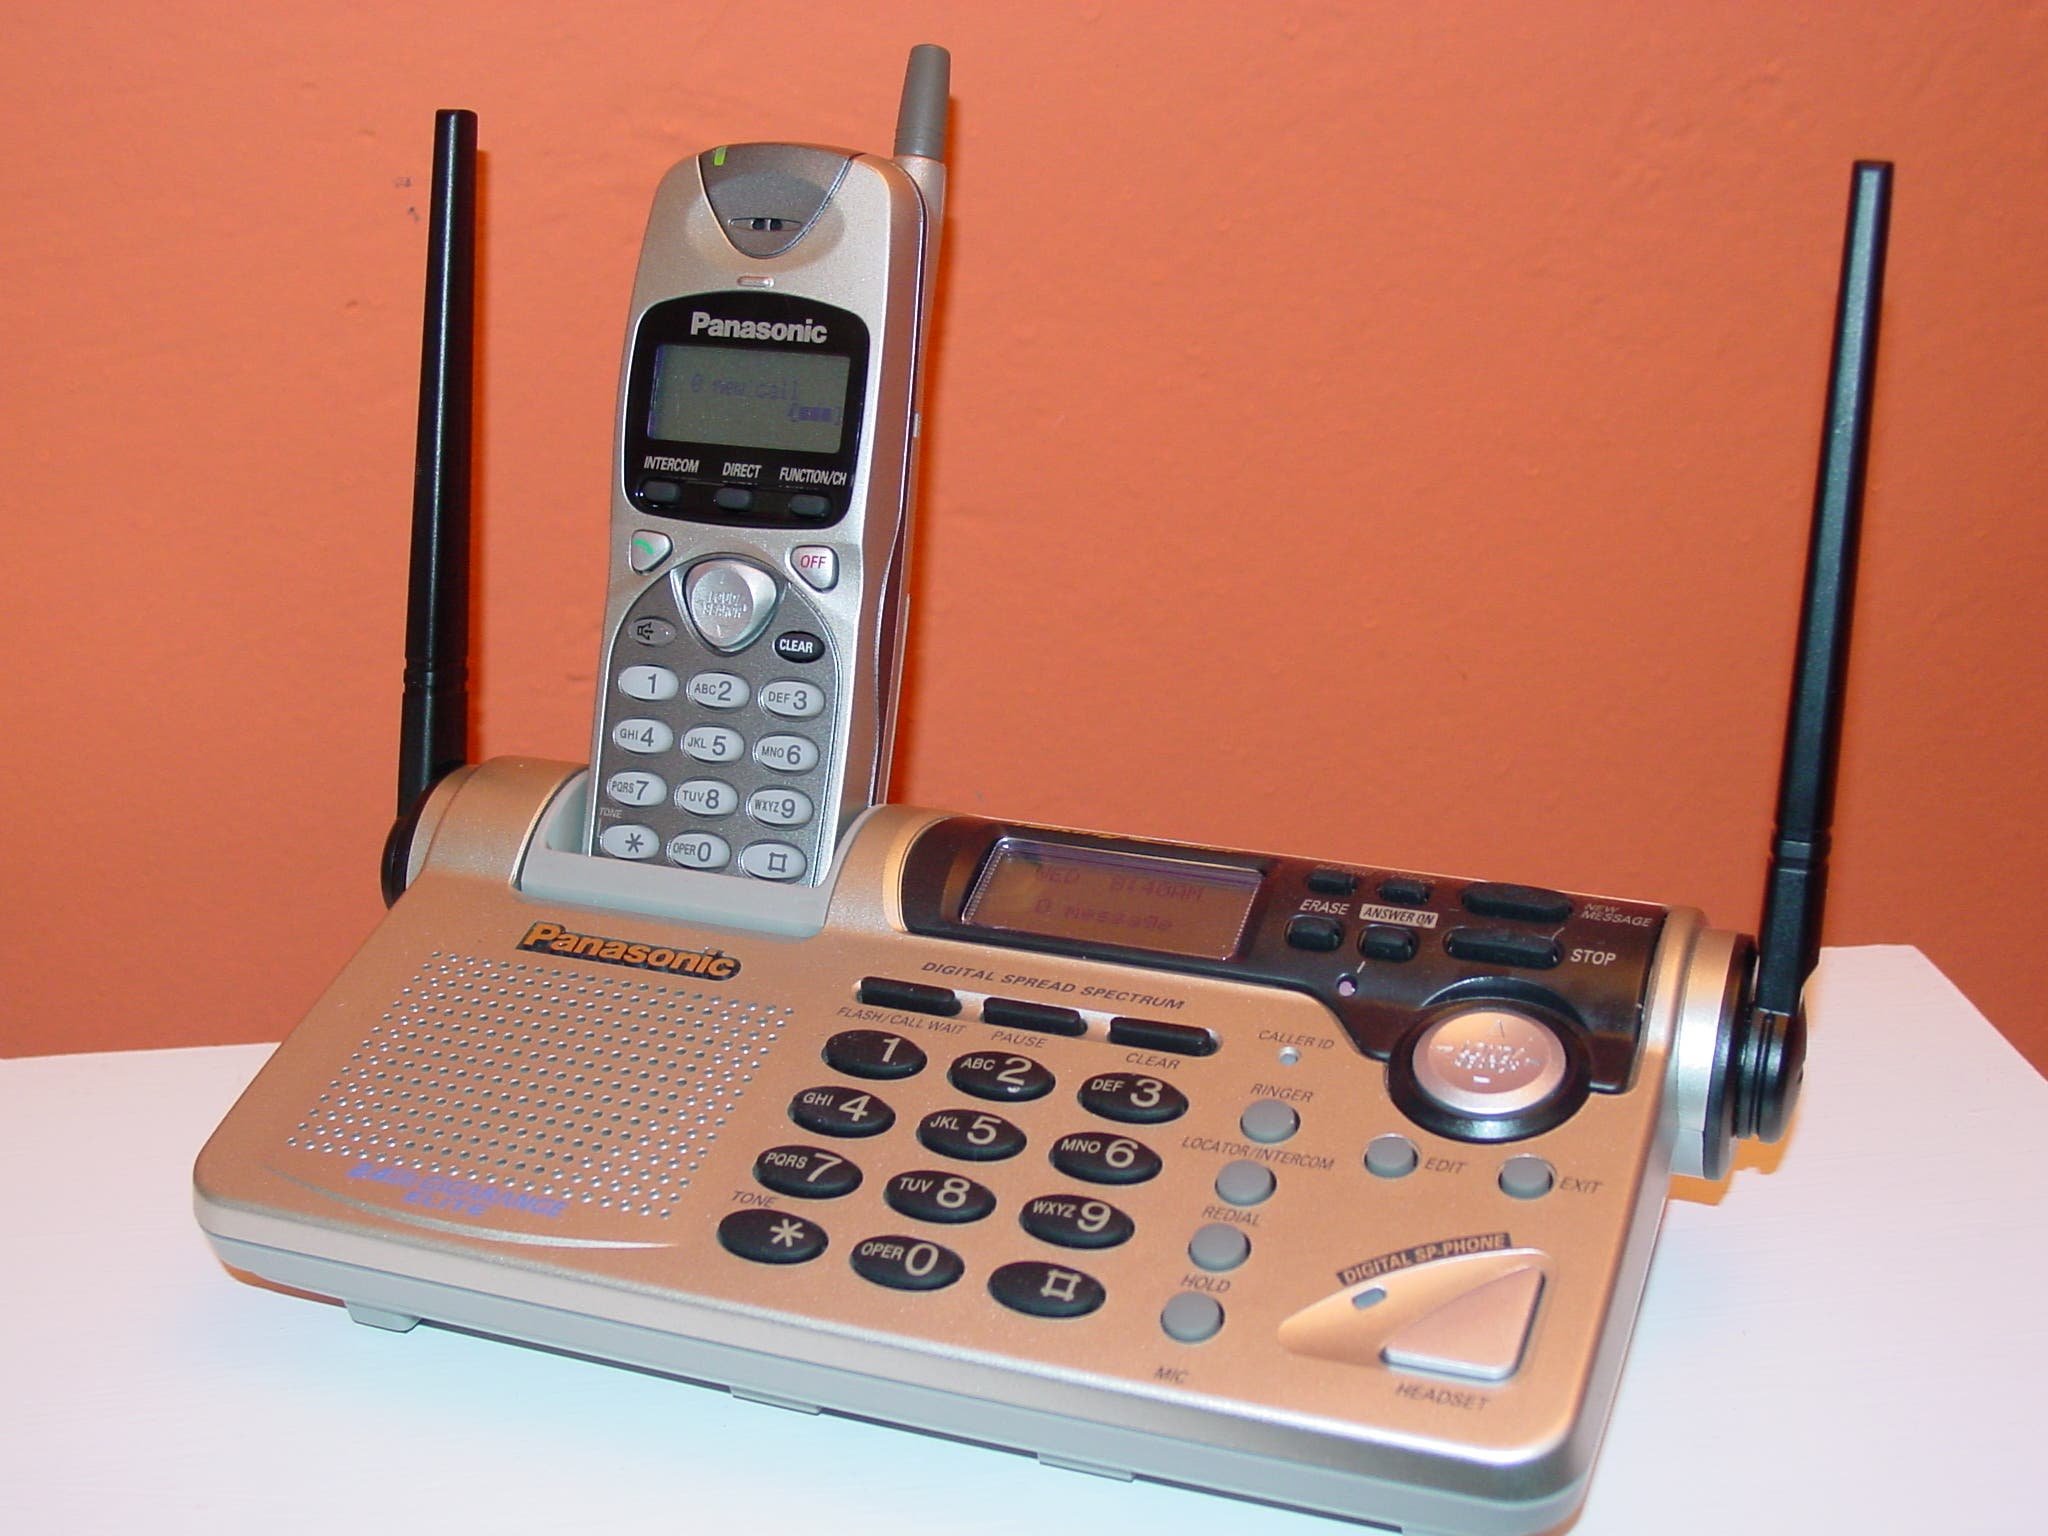 A Panasonic Cordless Answering System KX-TG268ON with handset is shown in Scarsdale, N.Y., Wednesday, Nov. 28, 2001. (File photo: AP)